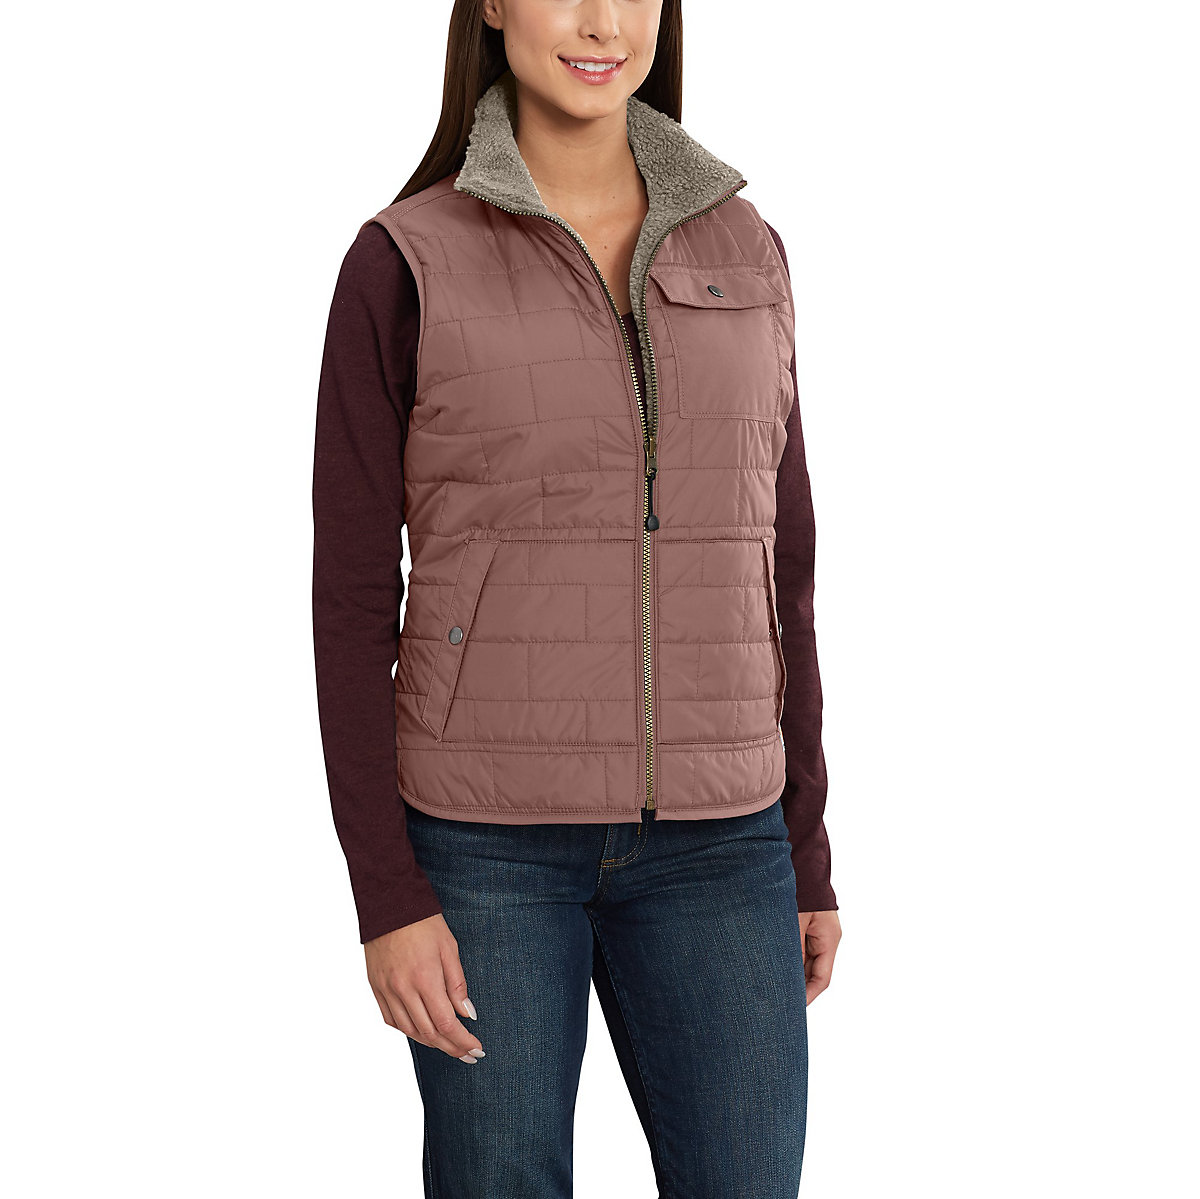 amoret girls The carhartt women's amoret sherpa-lined vest - 102750 is a reversible vest that can change from cozy flannel to durable water repellant it is lightweight and sherpa lined for comfort.